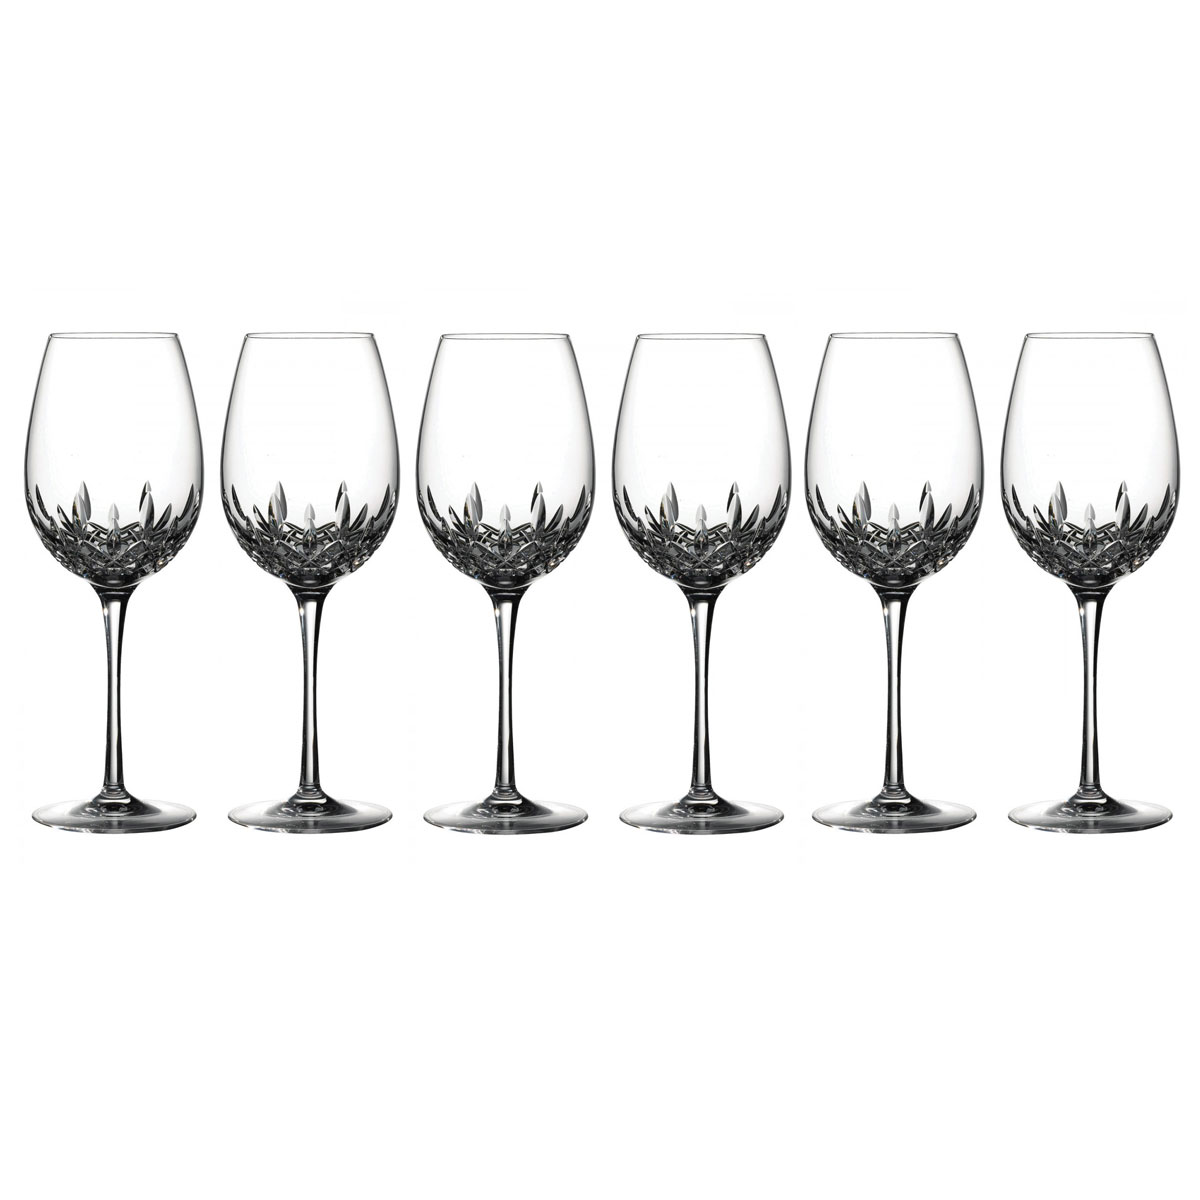 Waterford Crystal, Lismore Essence Red Wine Crystal Goblets, Boxed Set 5+1 Free